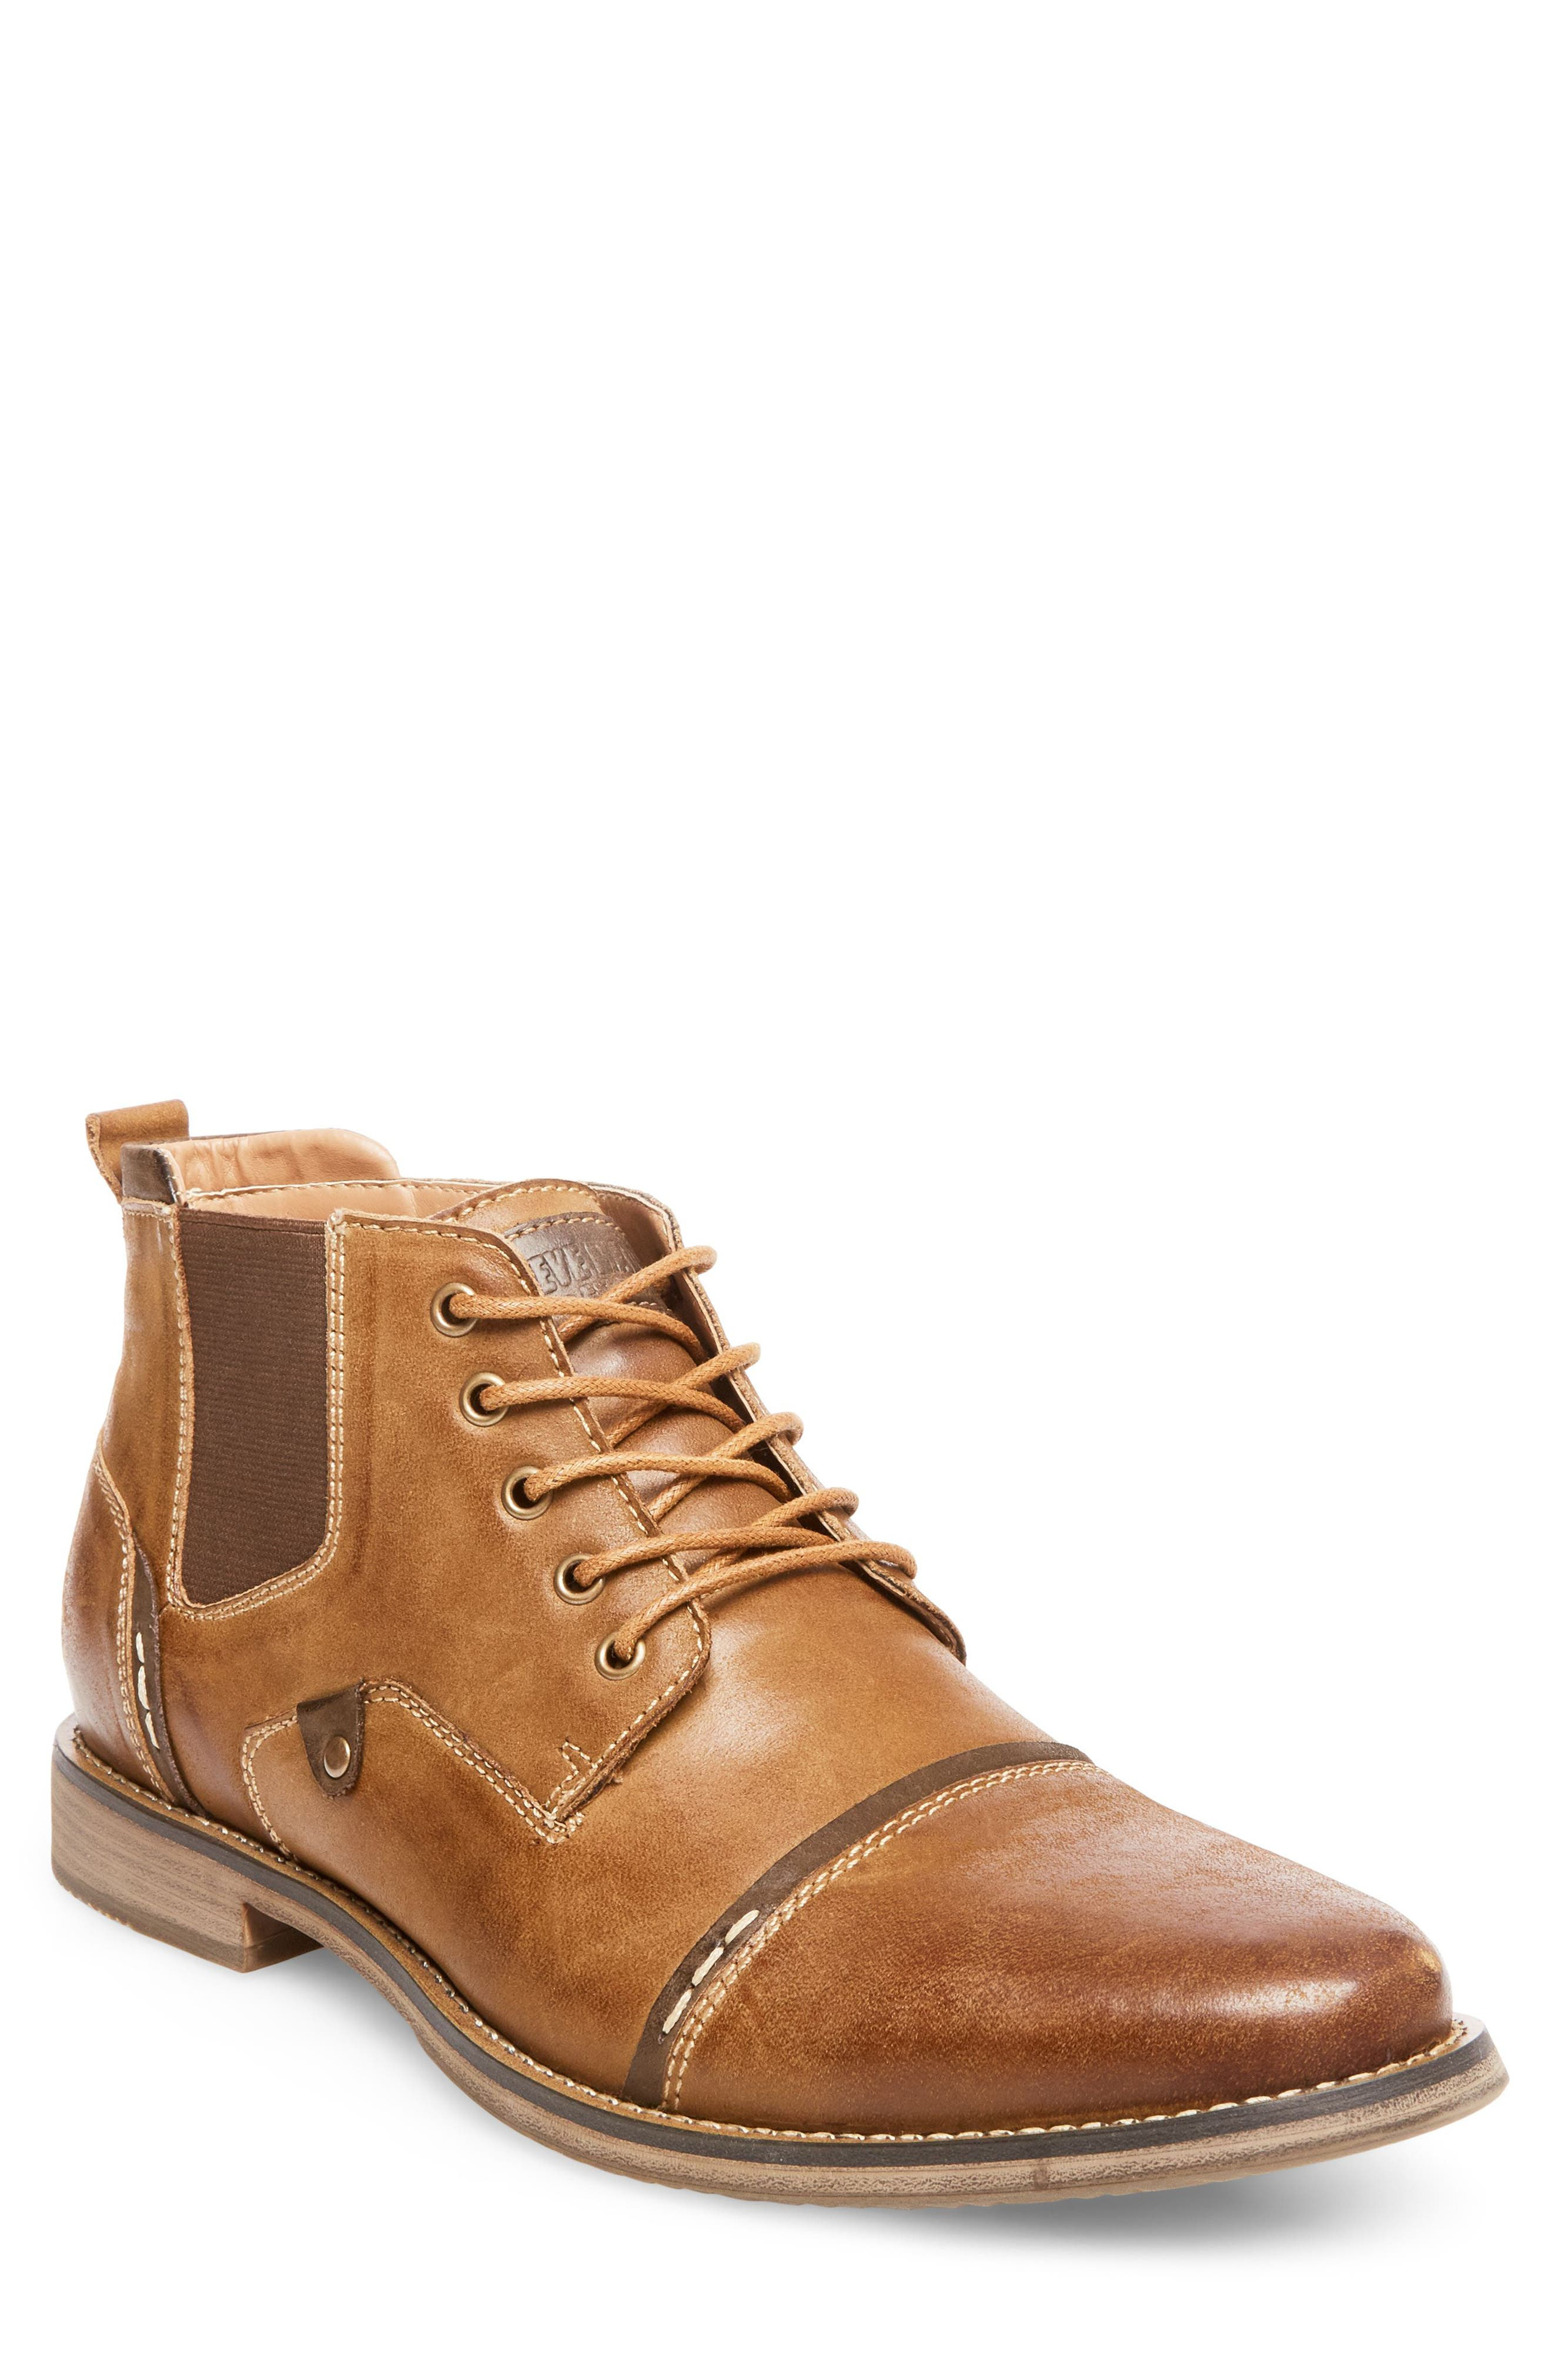 Main Image - Steve Madden Proxy Cap Toe Boot (Men)